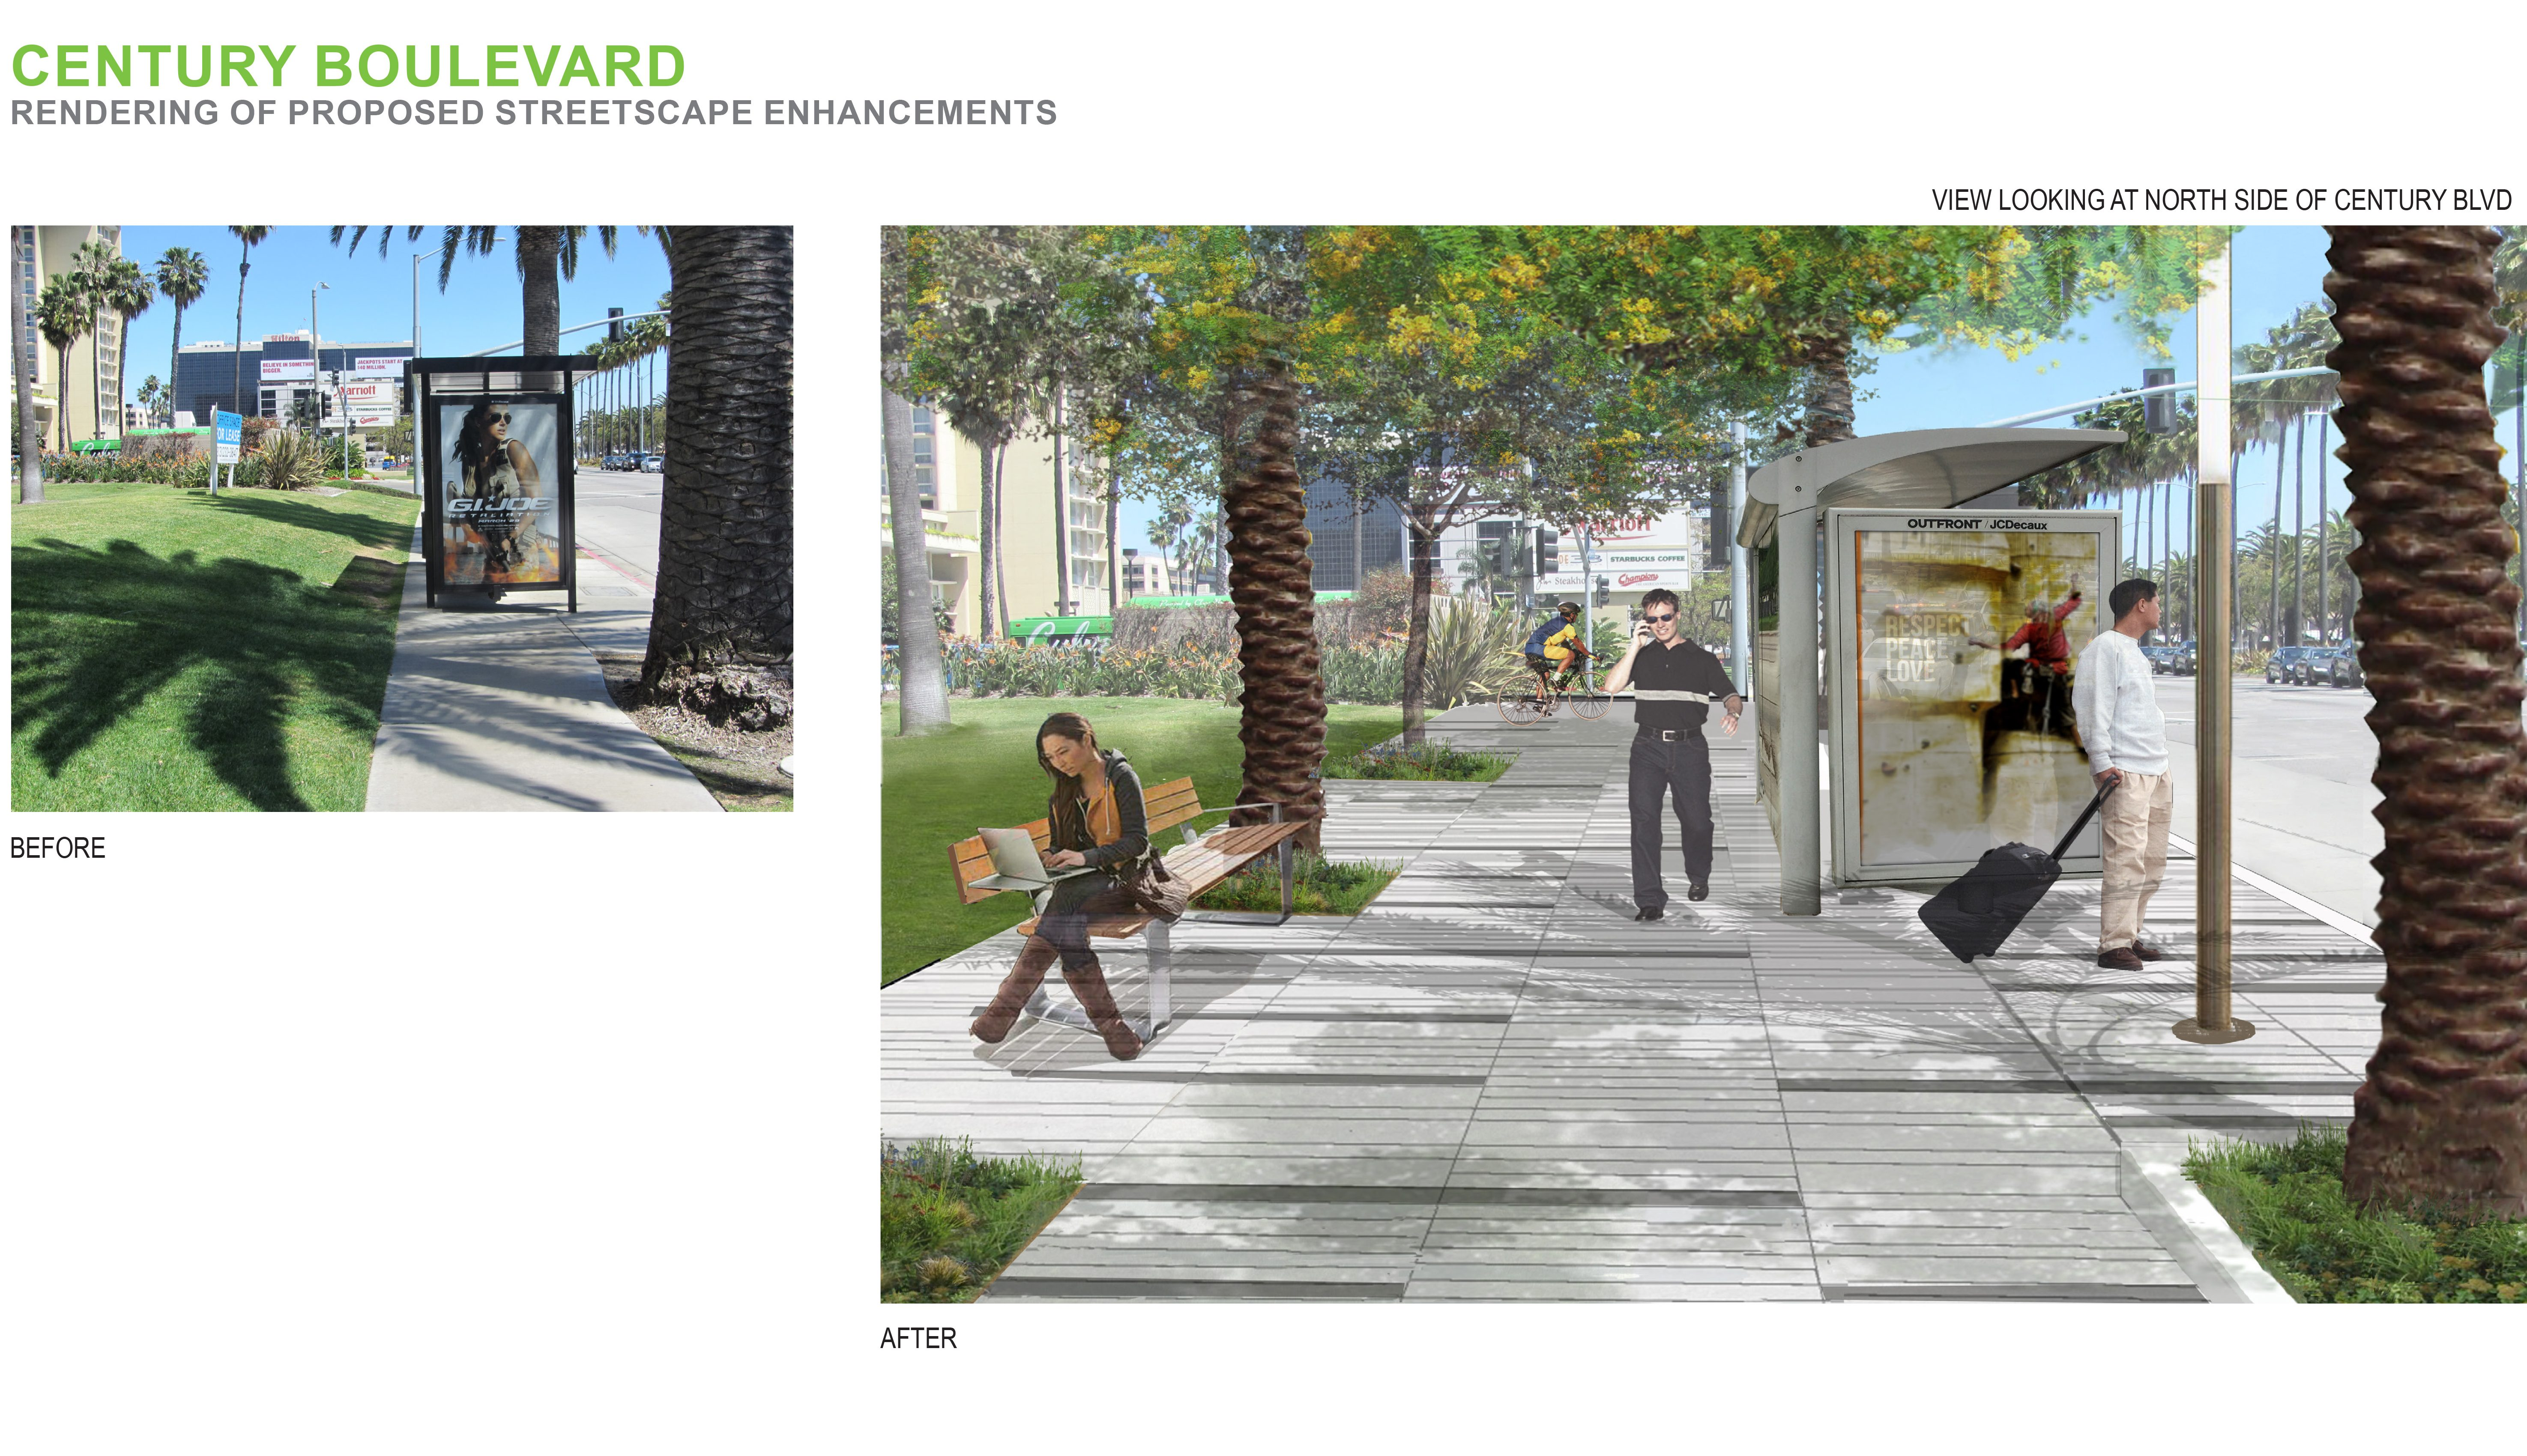 streetscape_plan_document_final_05_21_2018-BEFORE AFTER-2